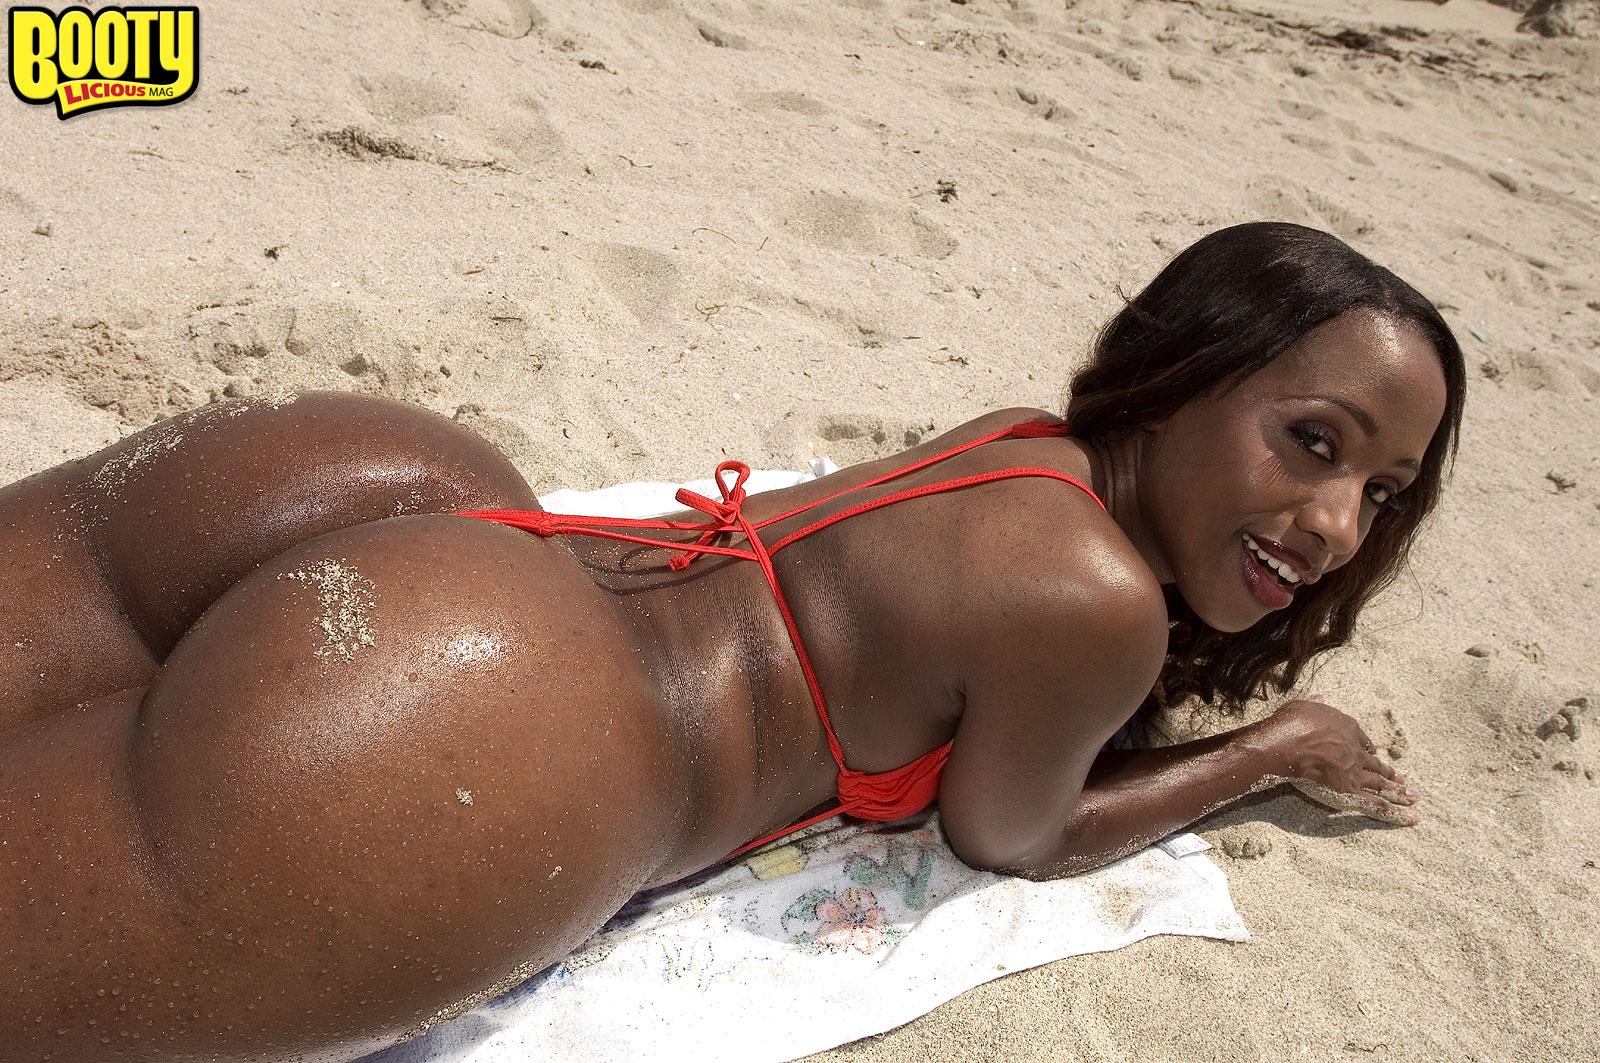 Ebony solo chick Sapphira demonstrating her massive booty on beach while wearing a red bathing suit